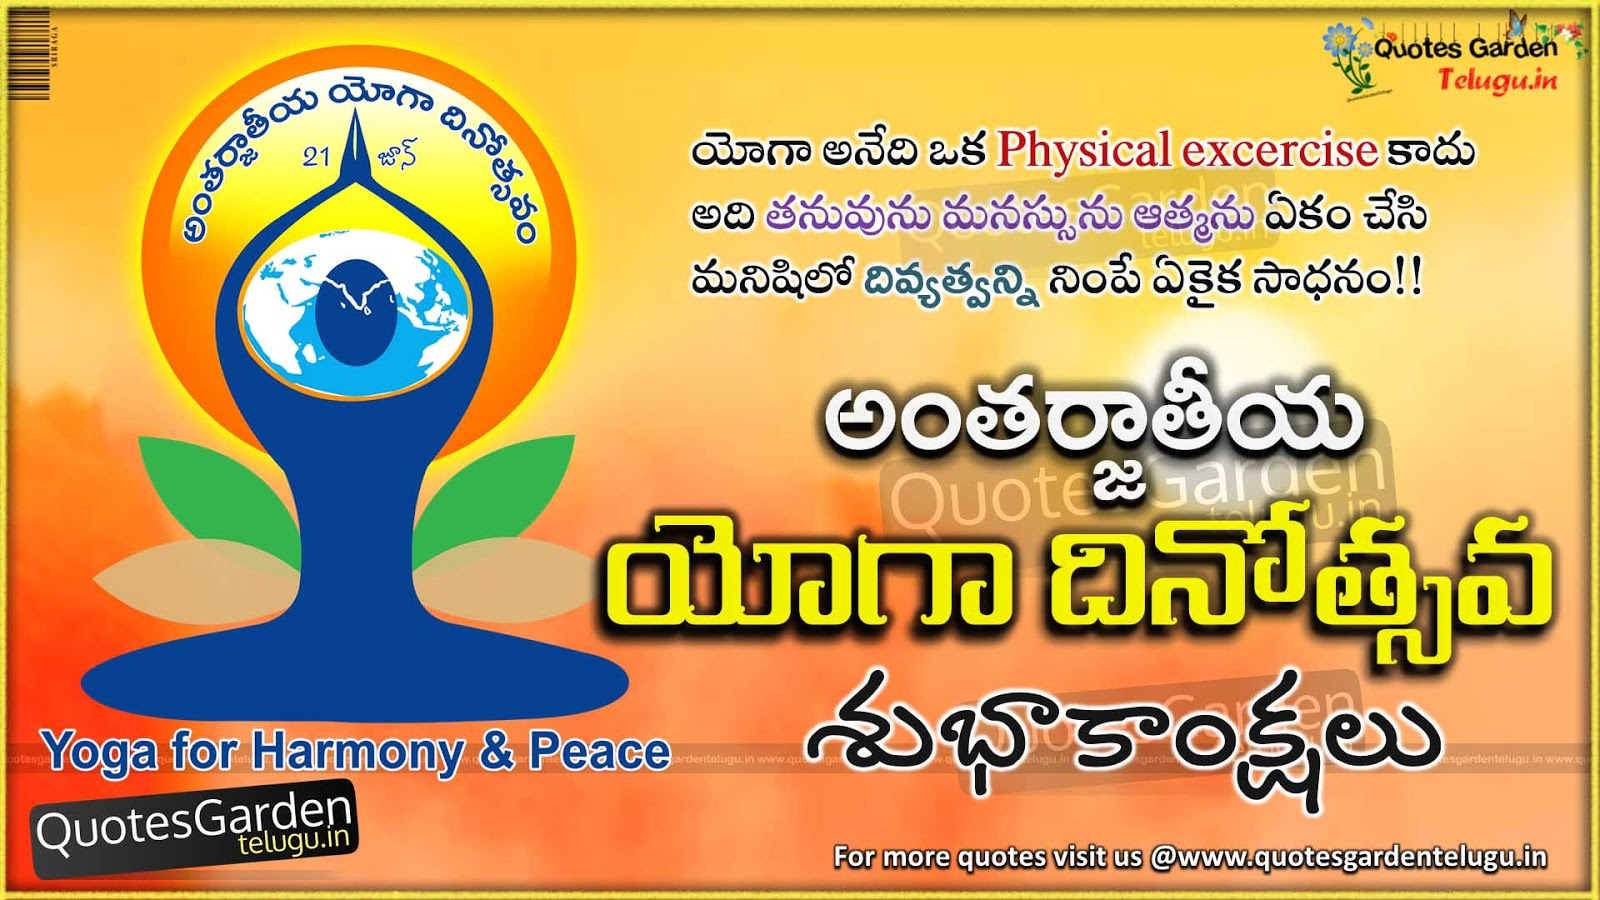 June 21st International Yogaday Wishes In Telugu Quotes Garden